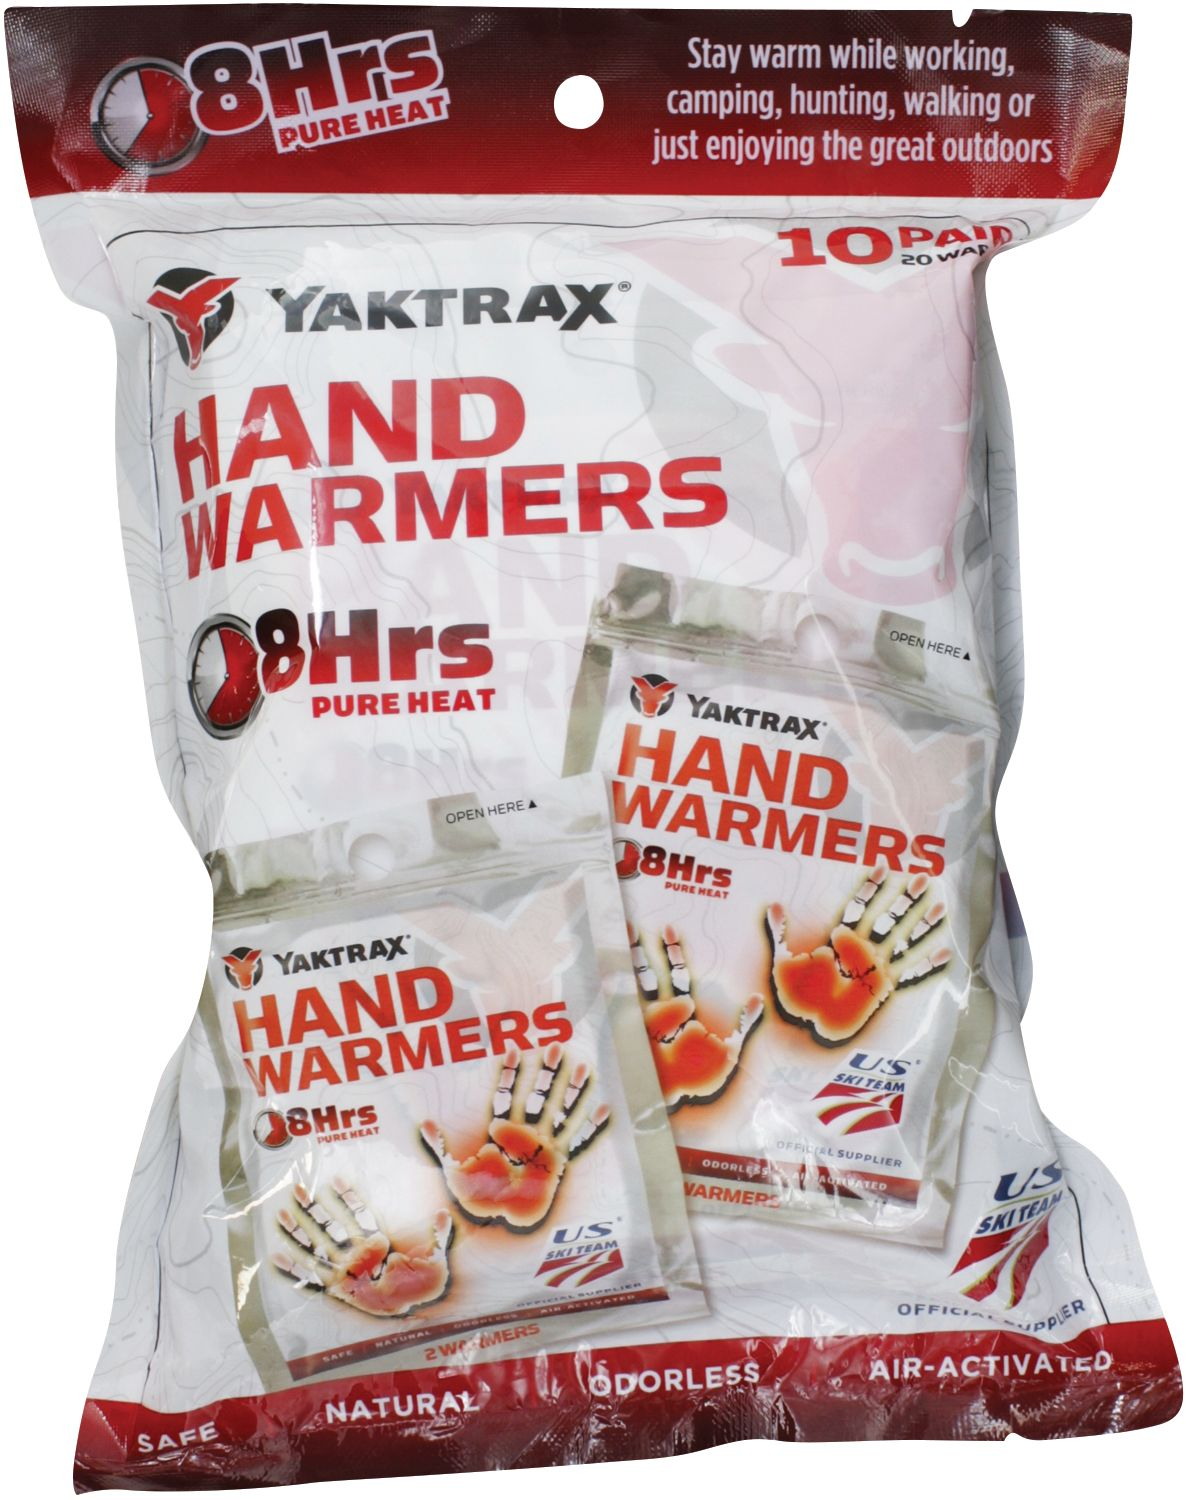 Yaktrax Hand Warmer – 10 Packs, Adult Unisex, Size: One size